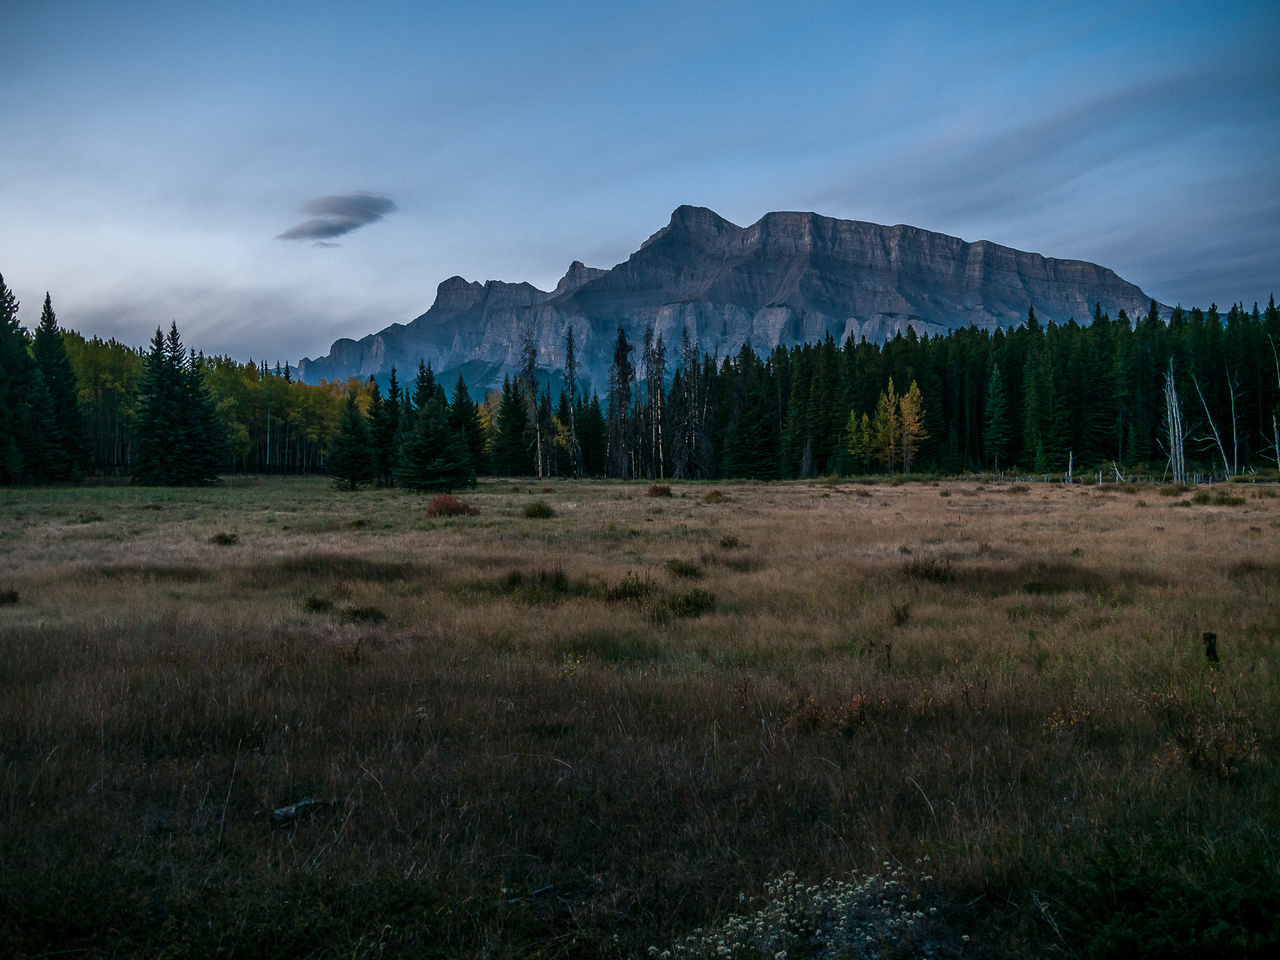 Looking back towards Cascade Mountain from the lower open meadows.